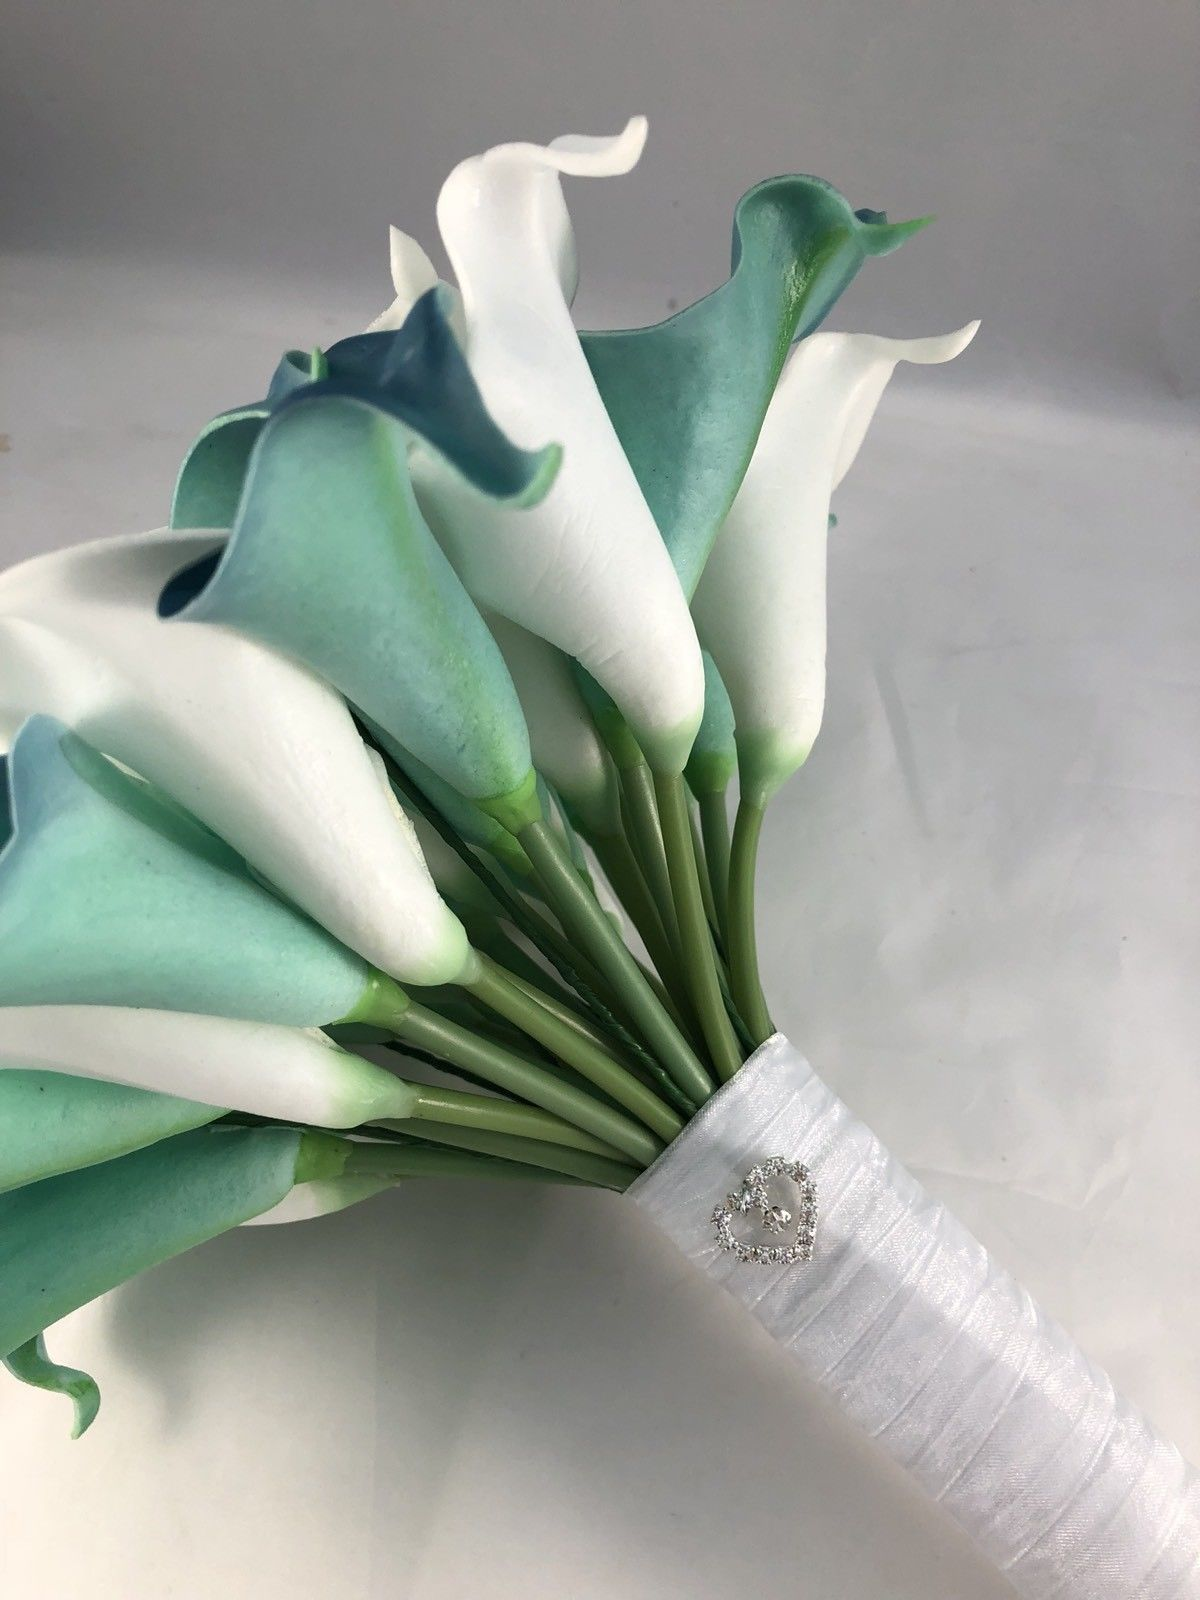 Flowers artificial calla lily bride bouquet white teal aqua green wedding flowers artificial calla lily bride bouquet white teal aqua green izmirmasajfo Choice Image